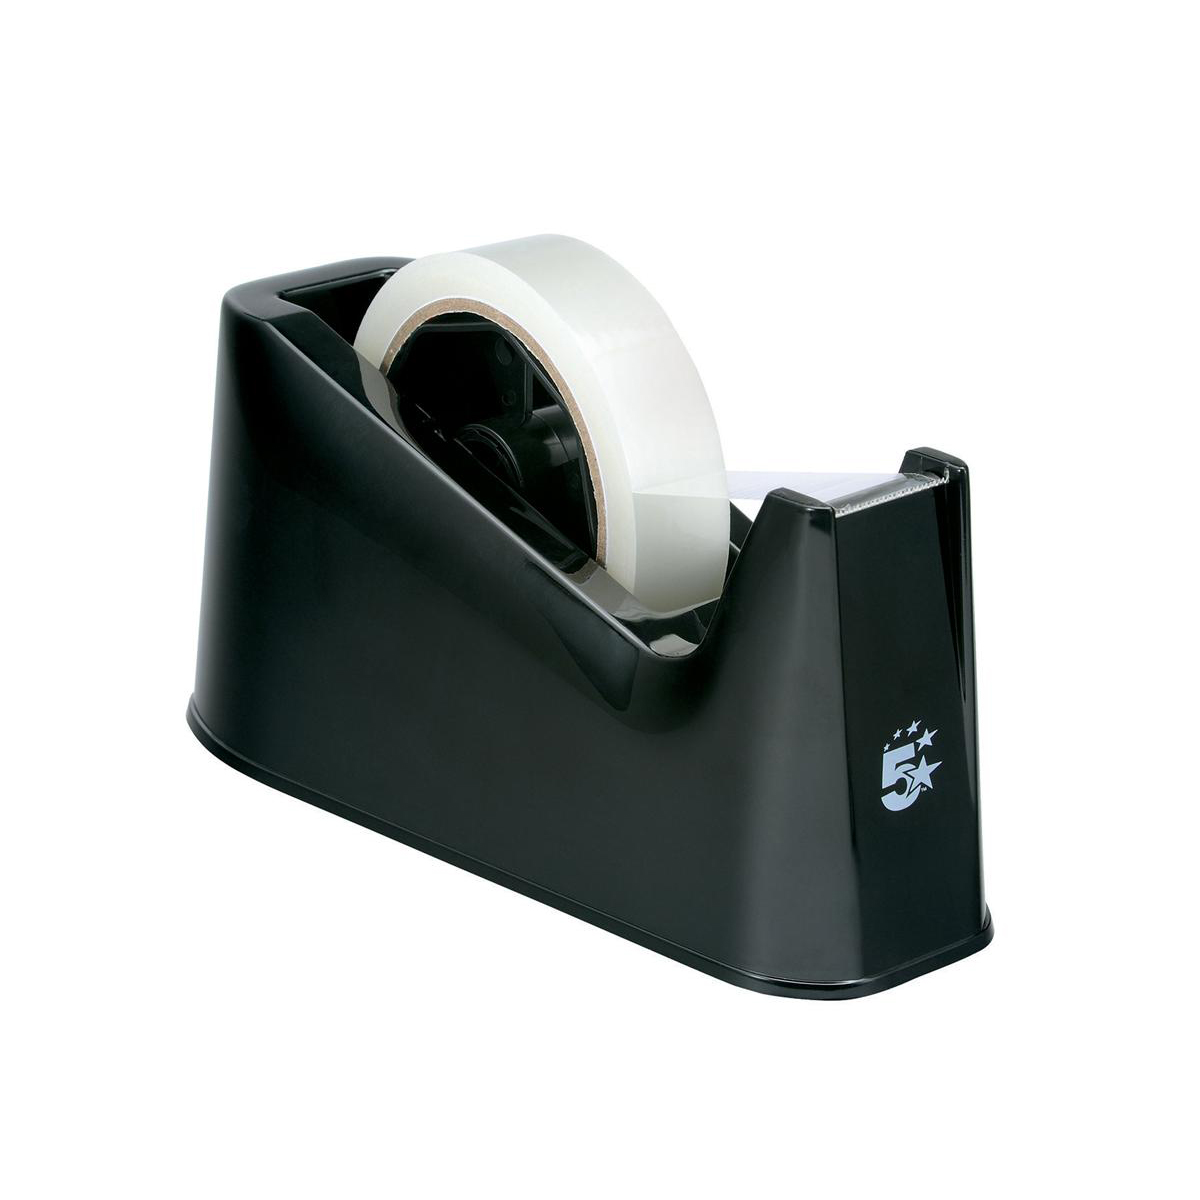 5 Star Office Tape Dispenser Desktop Weighted Non-slip Roll Capacity 25mm Width 75m Length Max Black